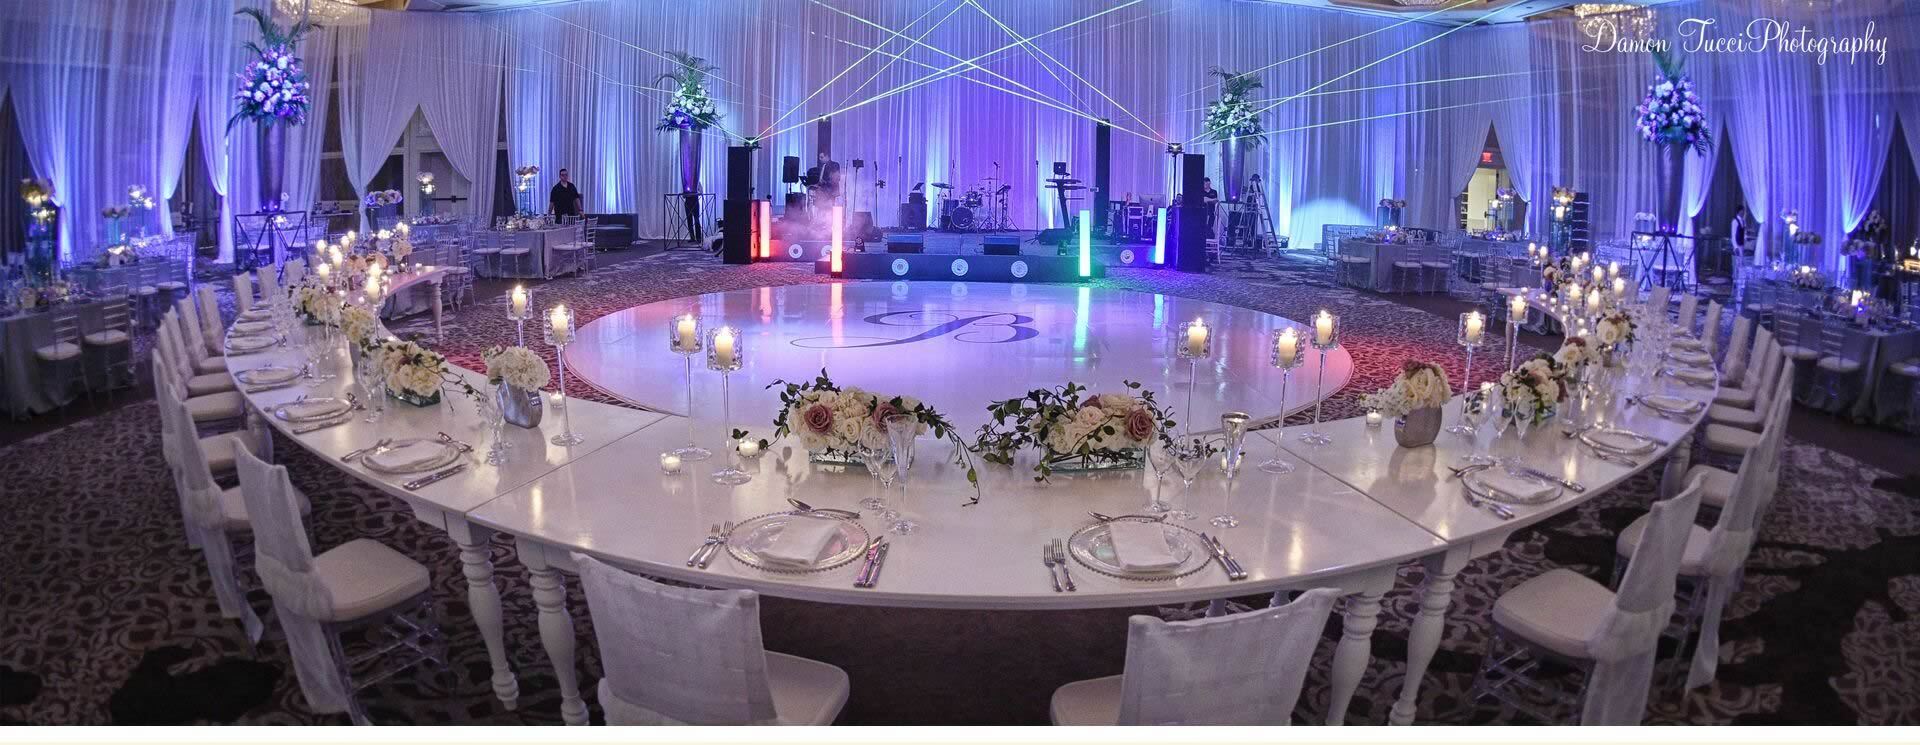 Wedding party and event rentals available orlando florida a chair affair rentals 6 junglespirit Images